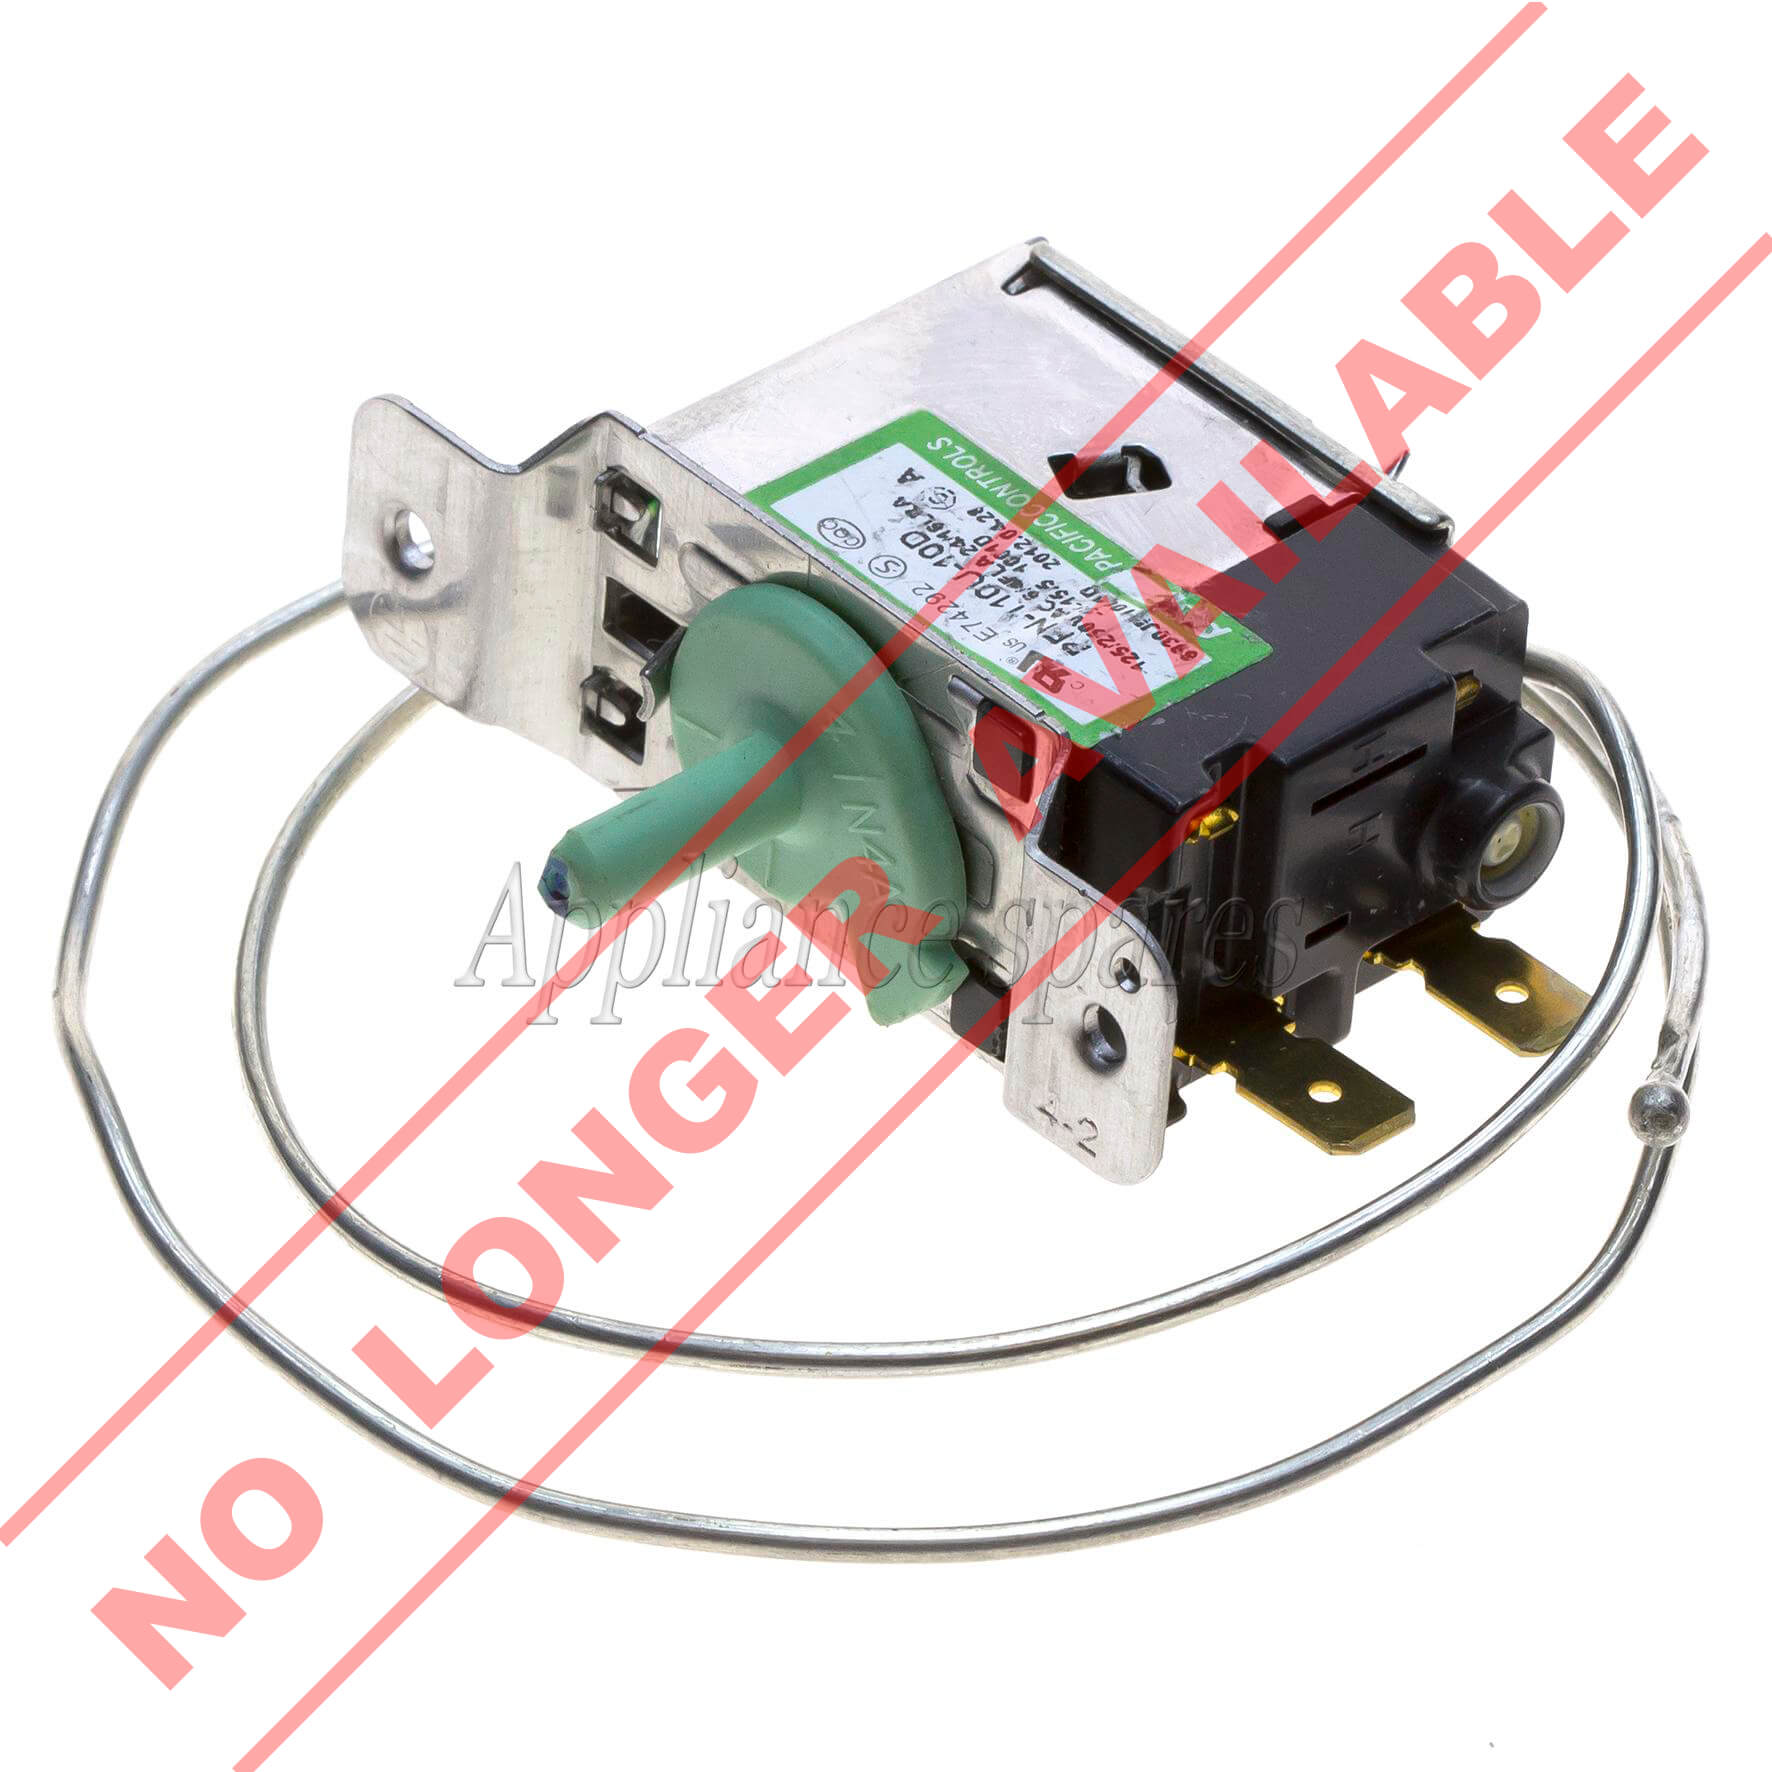 Honeywell Yth8321r1002 Visionpro 8000 Redlink Technology Thermostats For Residential Or  mercial In White as well Watch furthermore Honeywell 8000 Thermostat Wiring Diagram further Honeywell Visionpro Th8000 Wiring Diagram furthermore mercial visionpro 8000. on honeywell visionpro 8000 thermostat